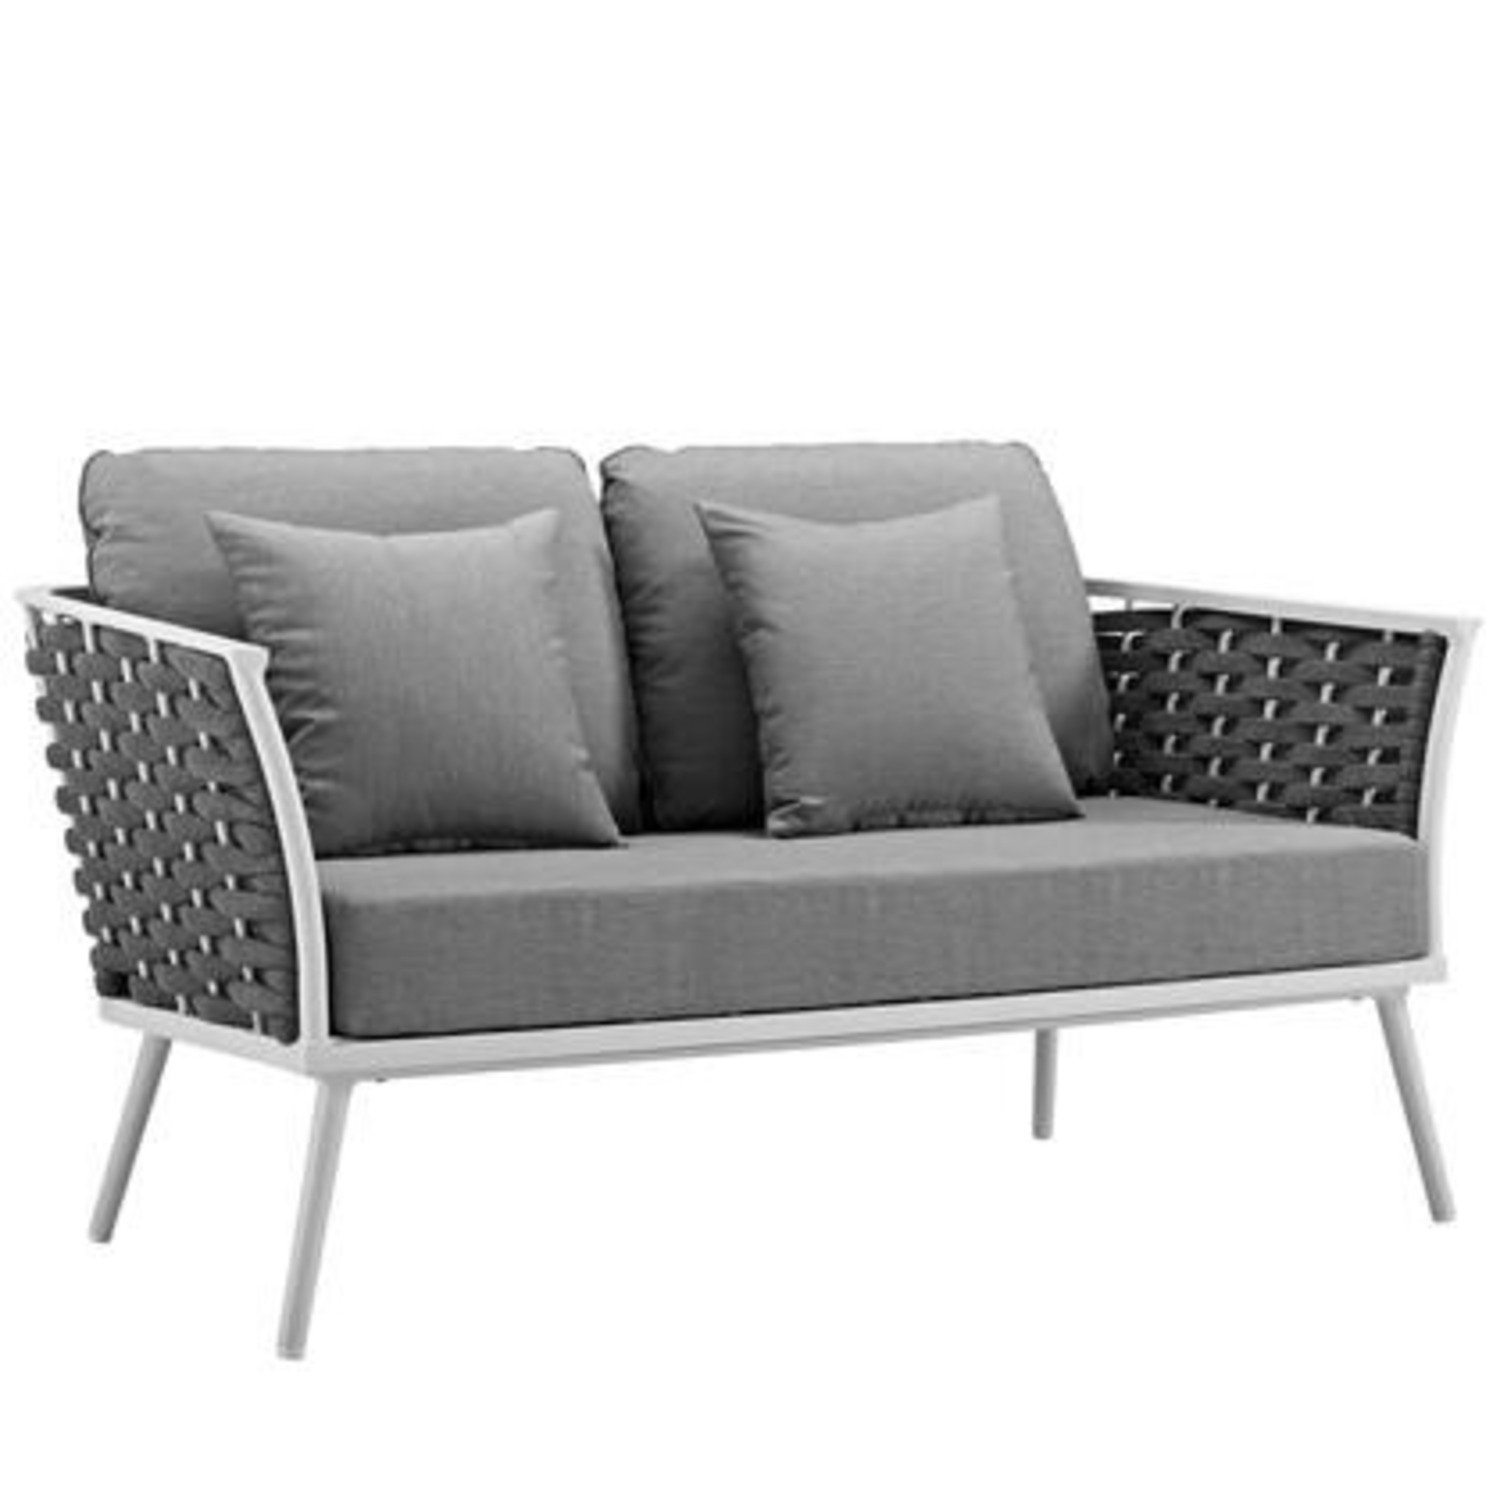 Outdoor Loveseat In Gray Fabric Rope & White Frame - image-0